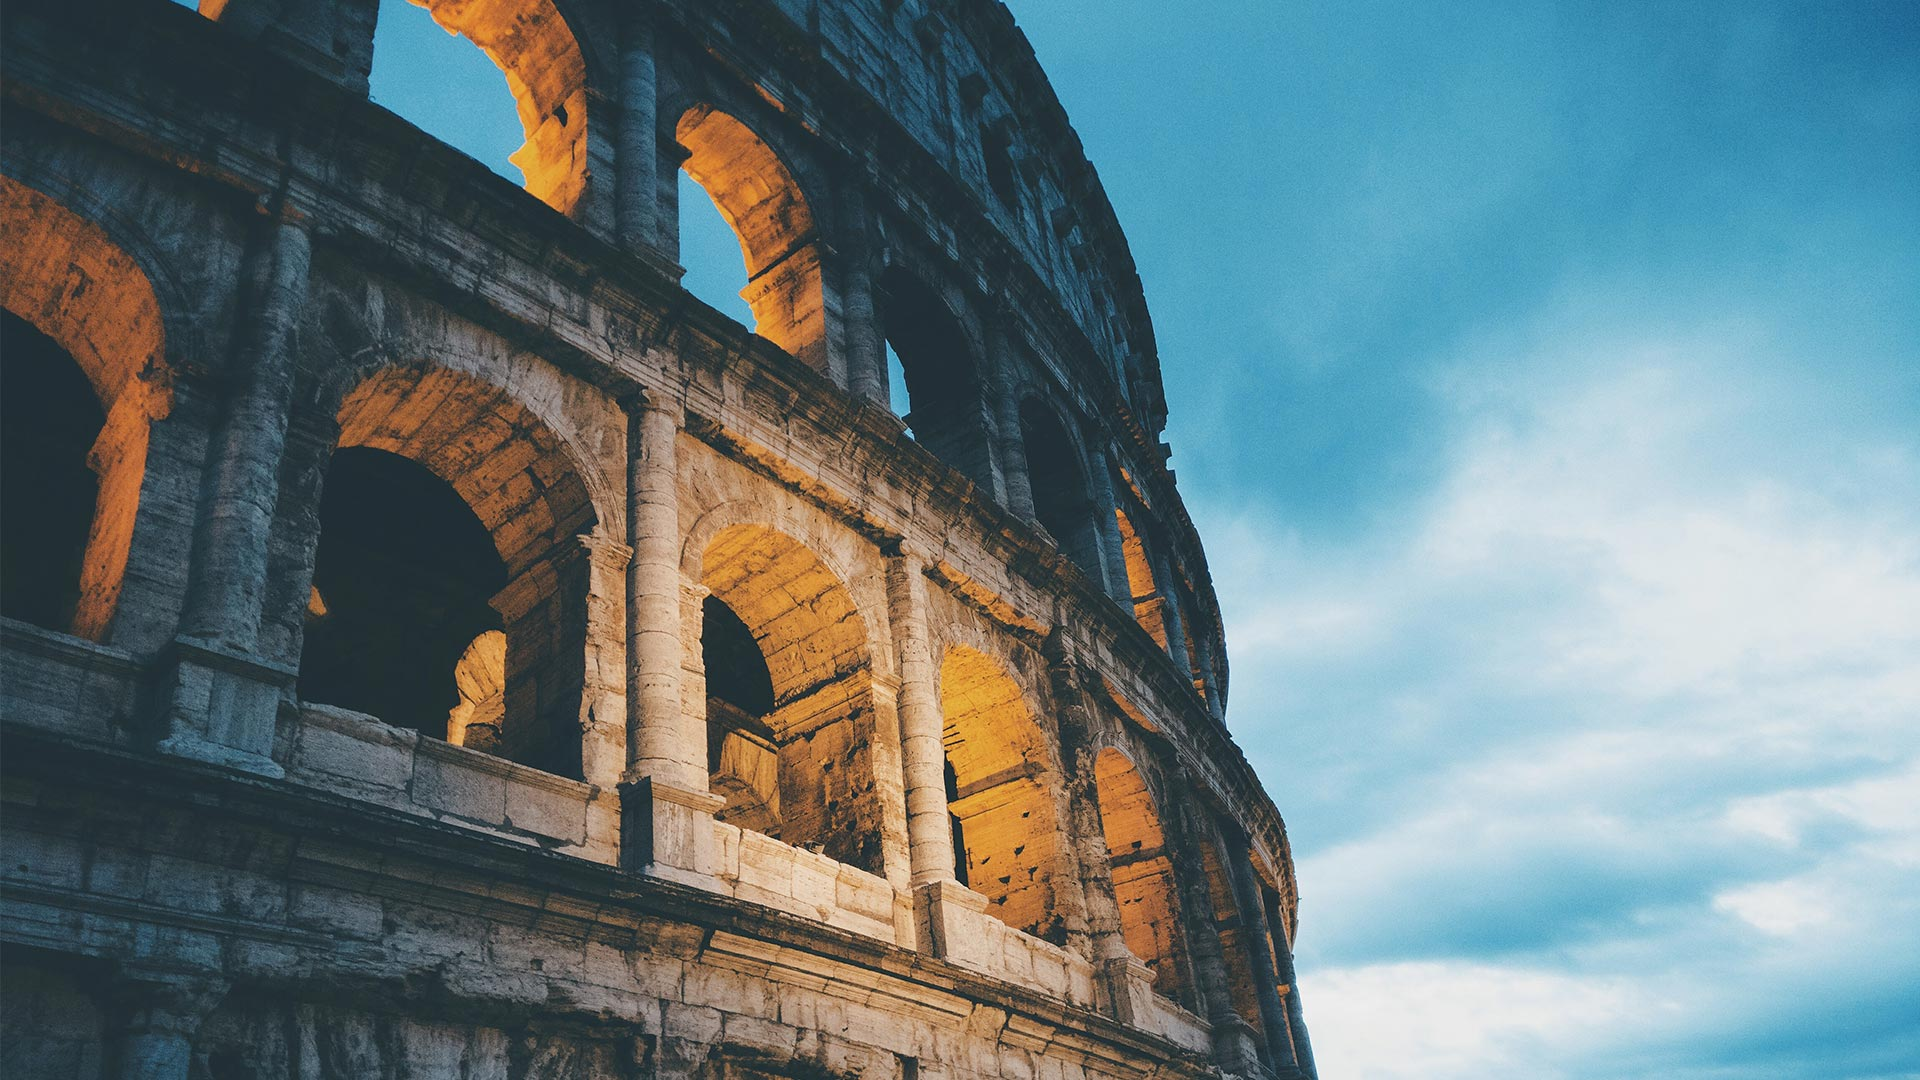 colosseum rome italy medieval roman